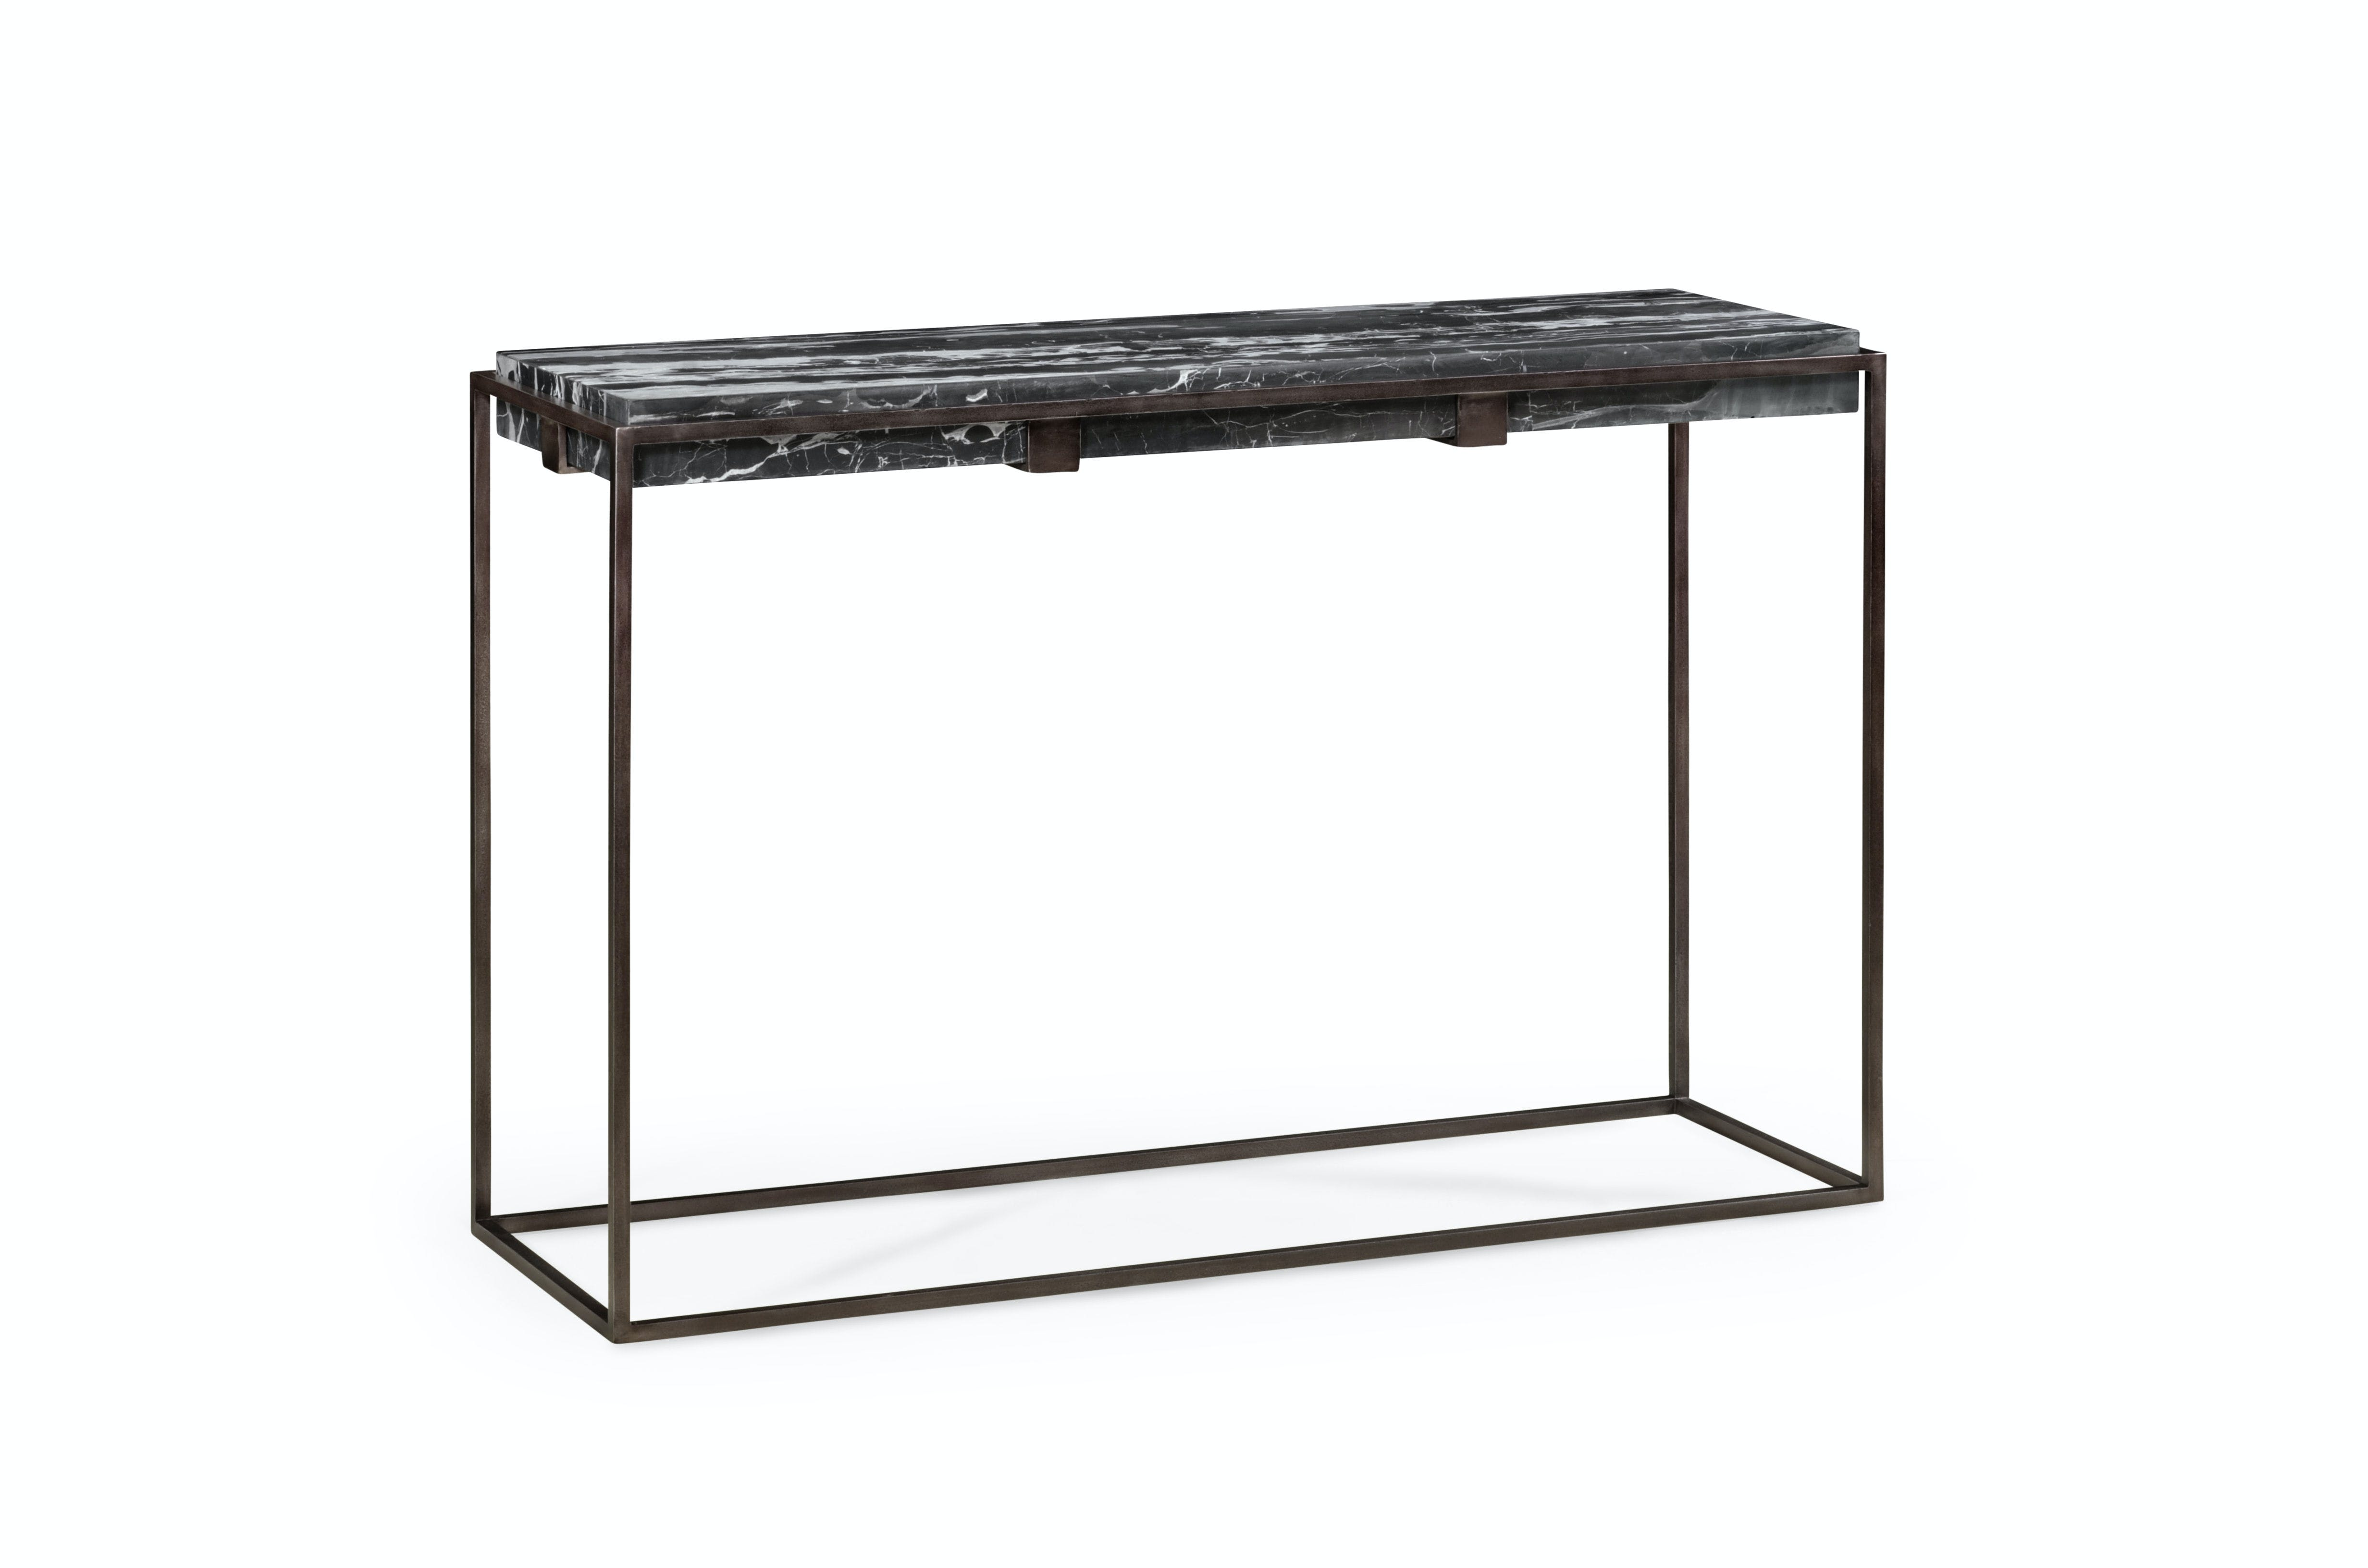 Picture of: Jonathan Charles Outdoor Patio Console Table With Black Marble Top 491174 Aps Issis Sons